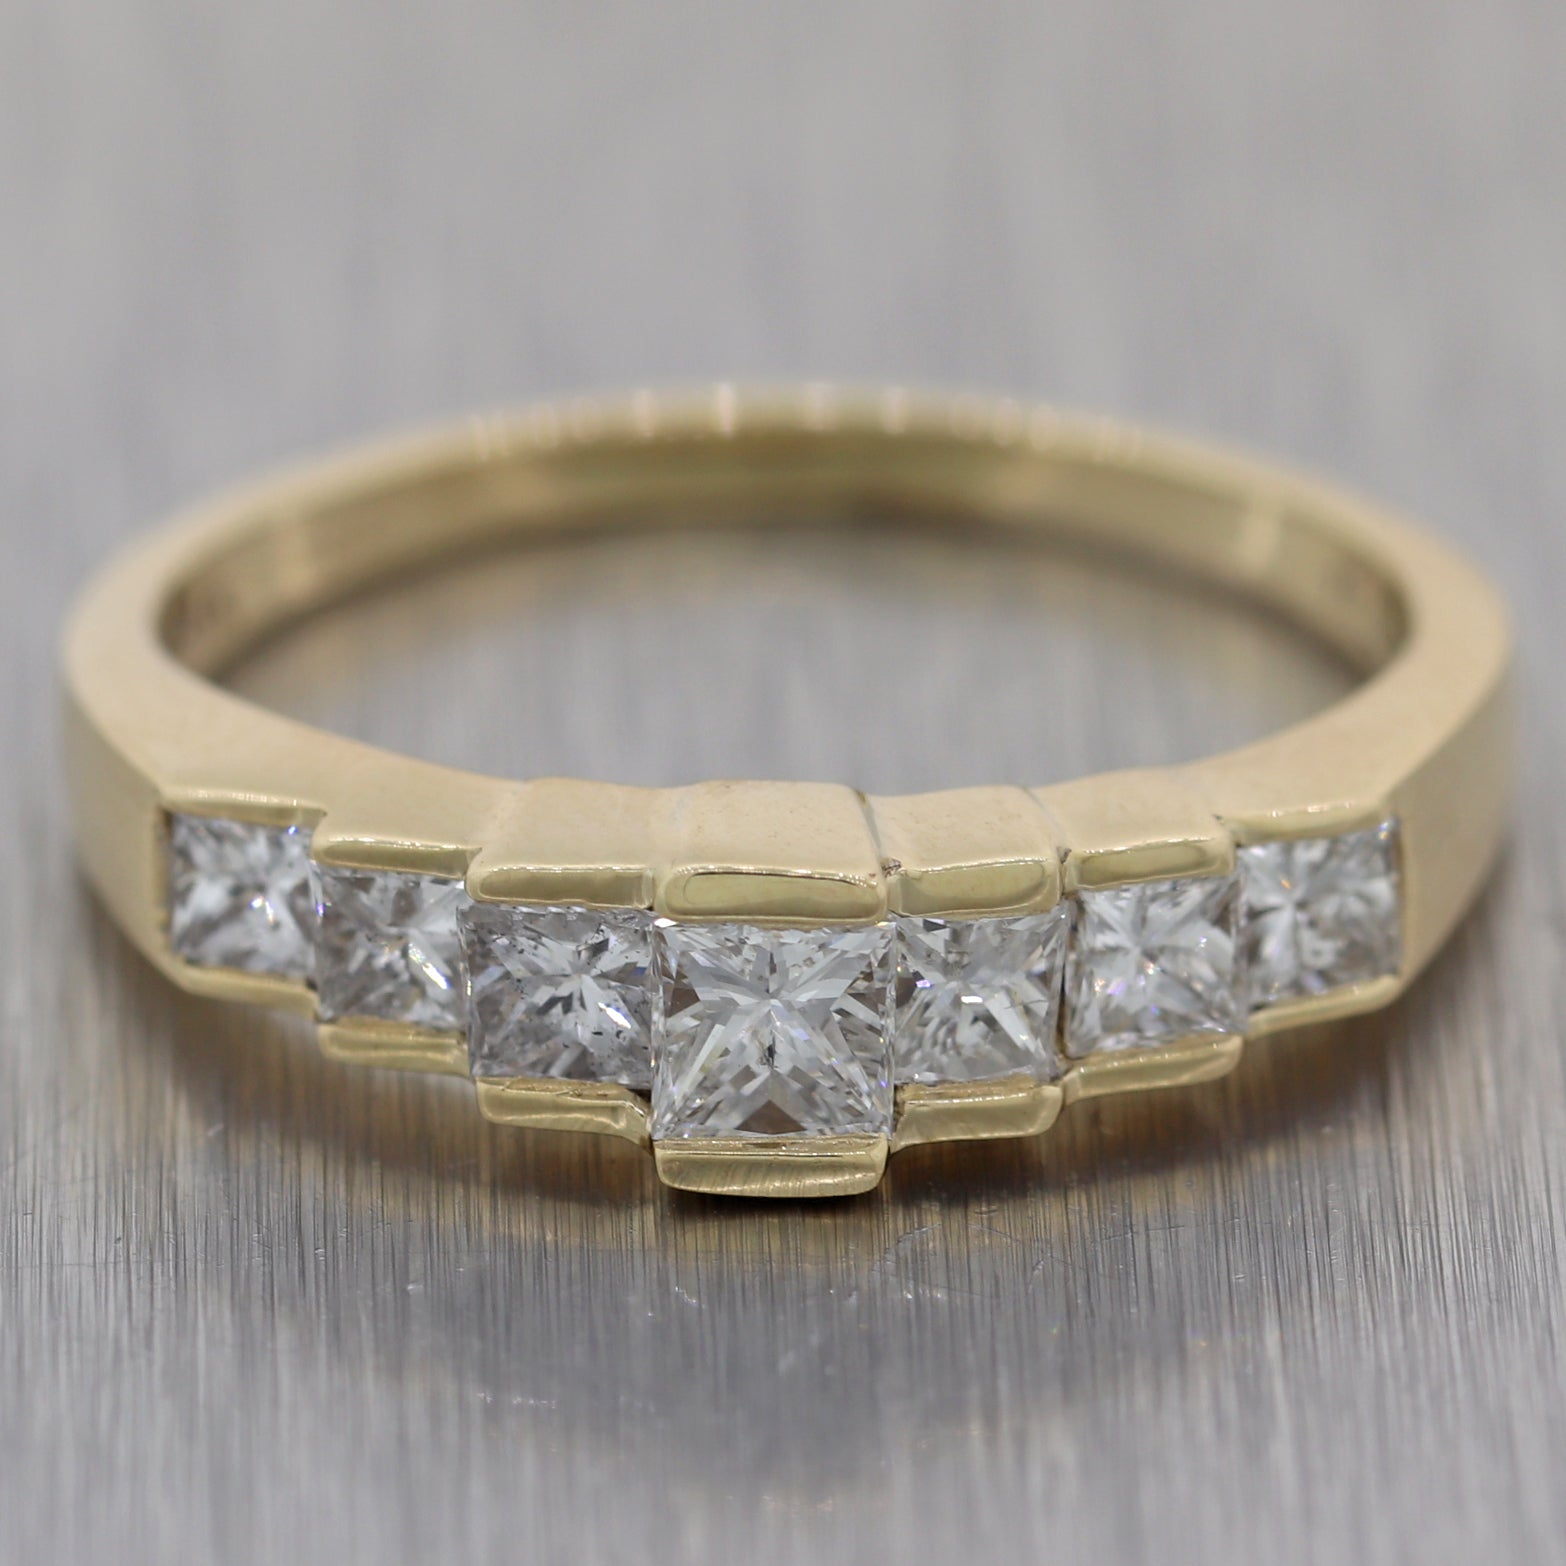 Vintage Estate 14k Yellow Gold 1ctw Diamond Princess Cut Wedding Band Ring